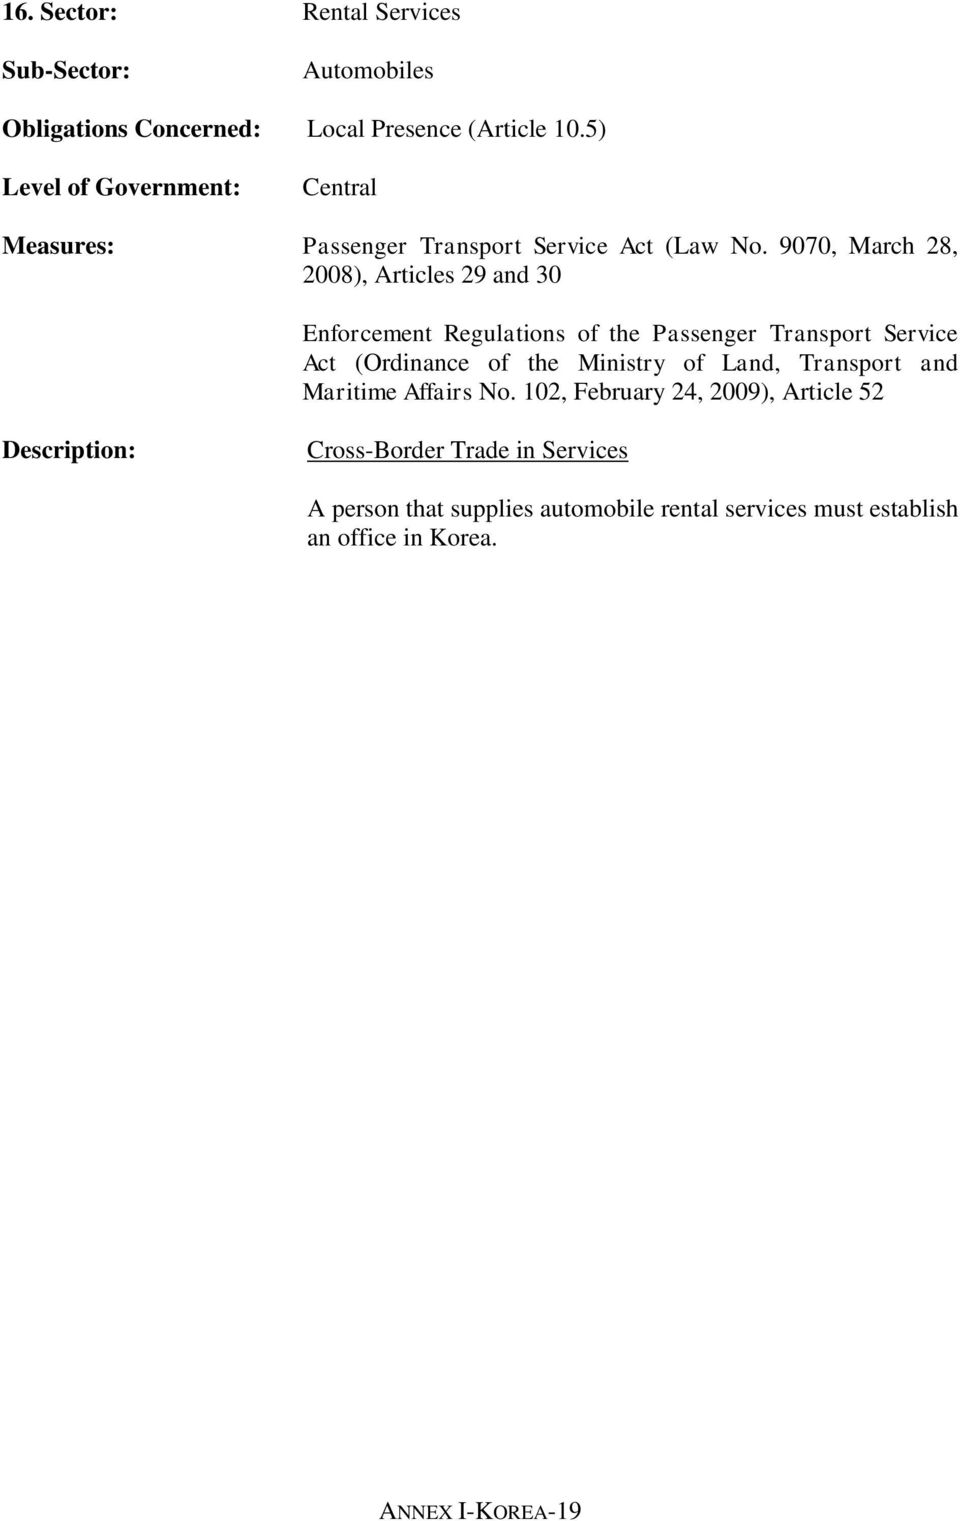 9070, March 28, 2008), Articles 29 and 30 Enforcement Regulations of the Passenger Transport Service Act (Ordinance of